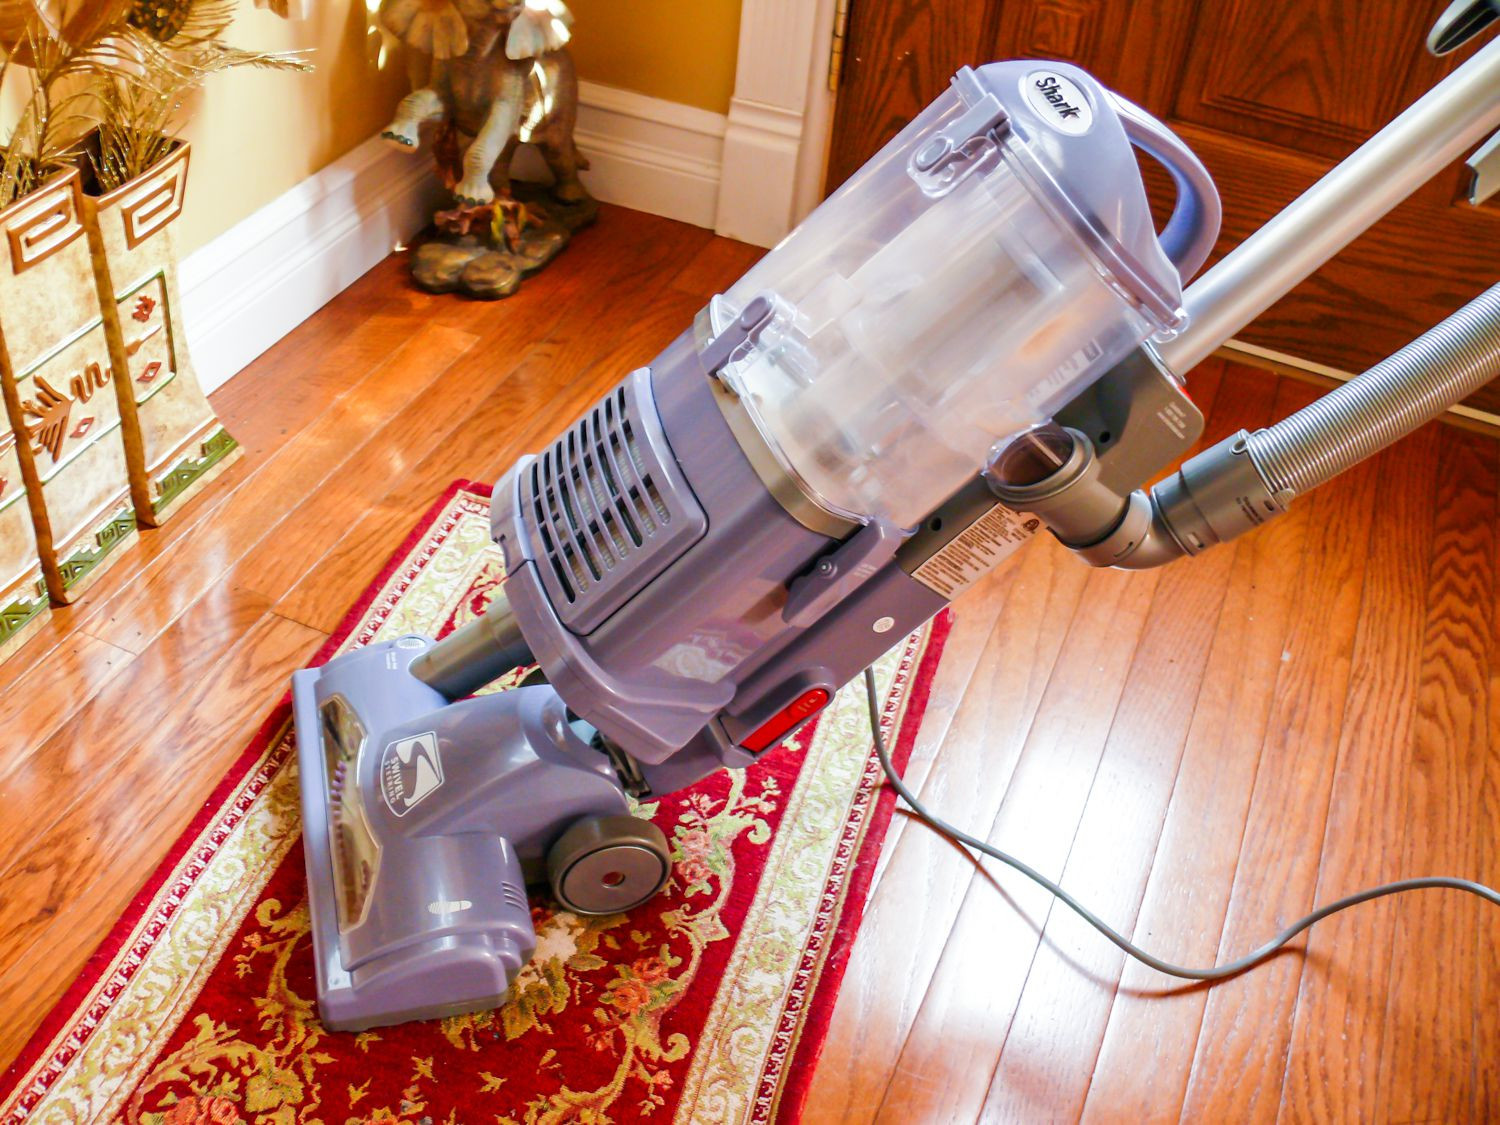 hoover hardwood floor steam cleaner of the 10 best vacuum cleaners to buy in 2018 within 4062974 2 2 5bbf718a46e0fb00519d59a7